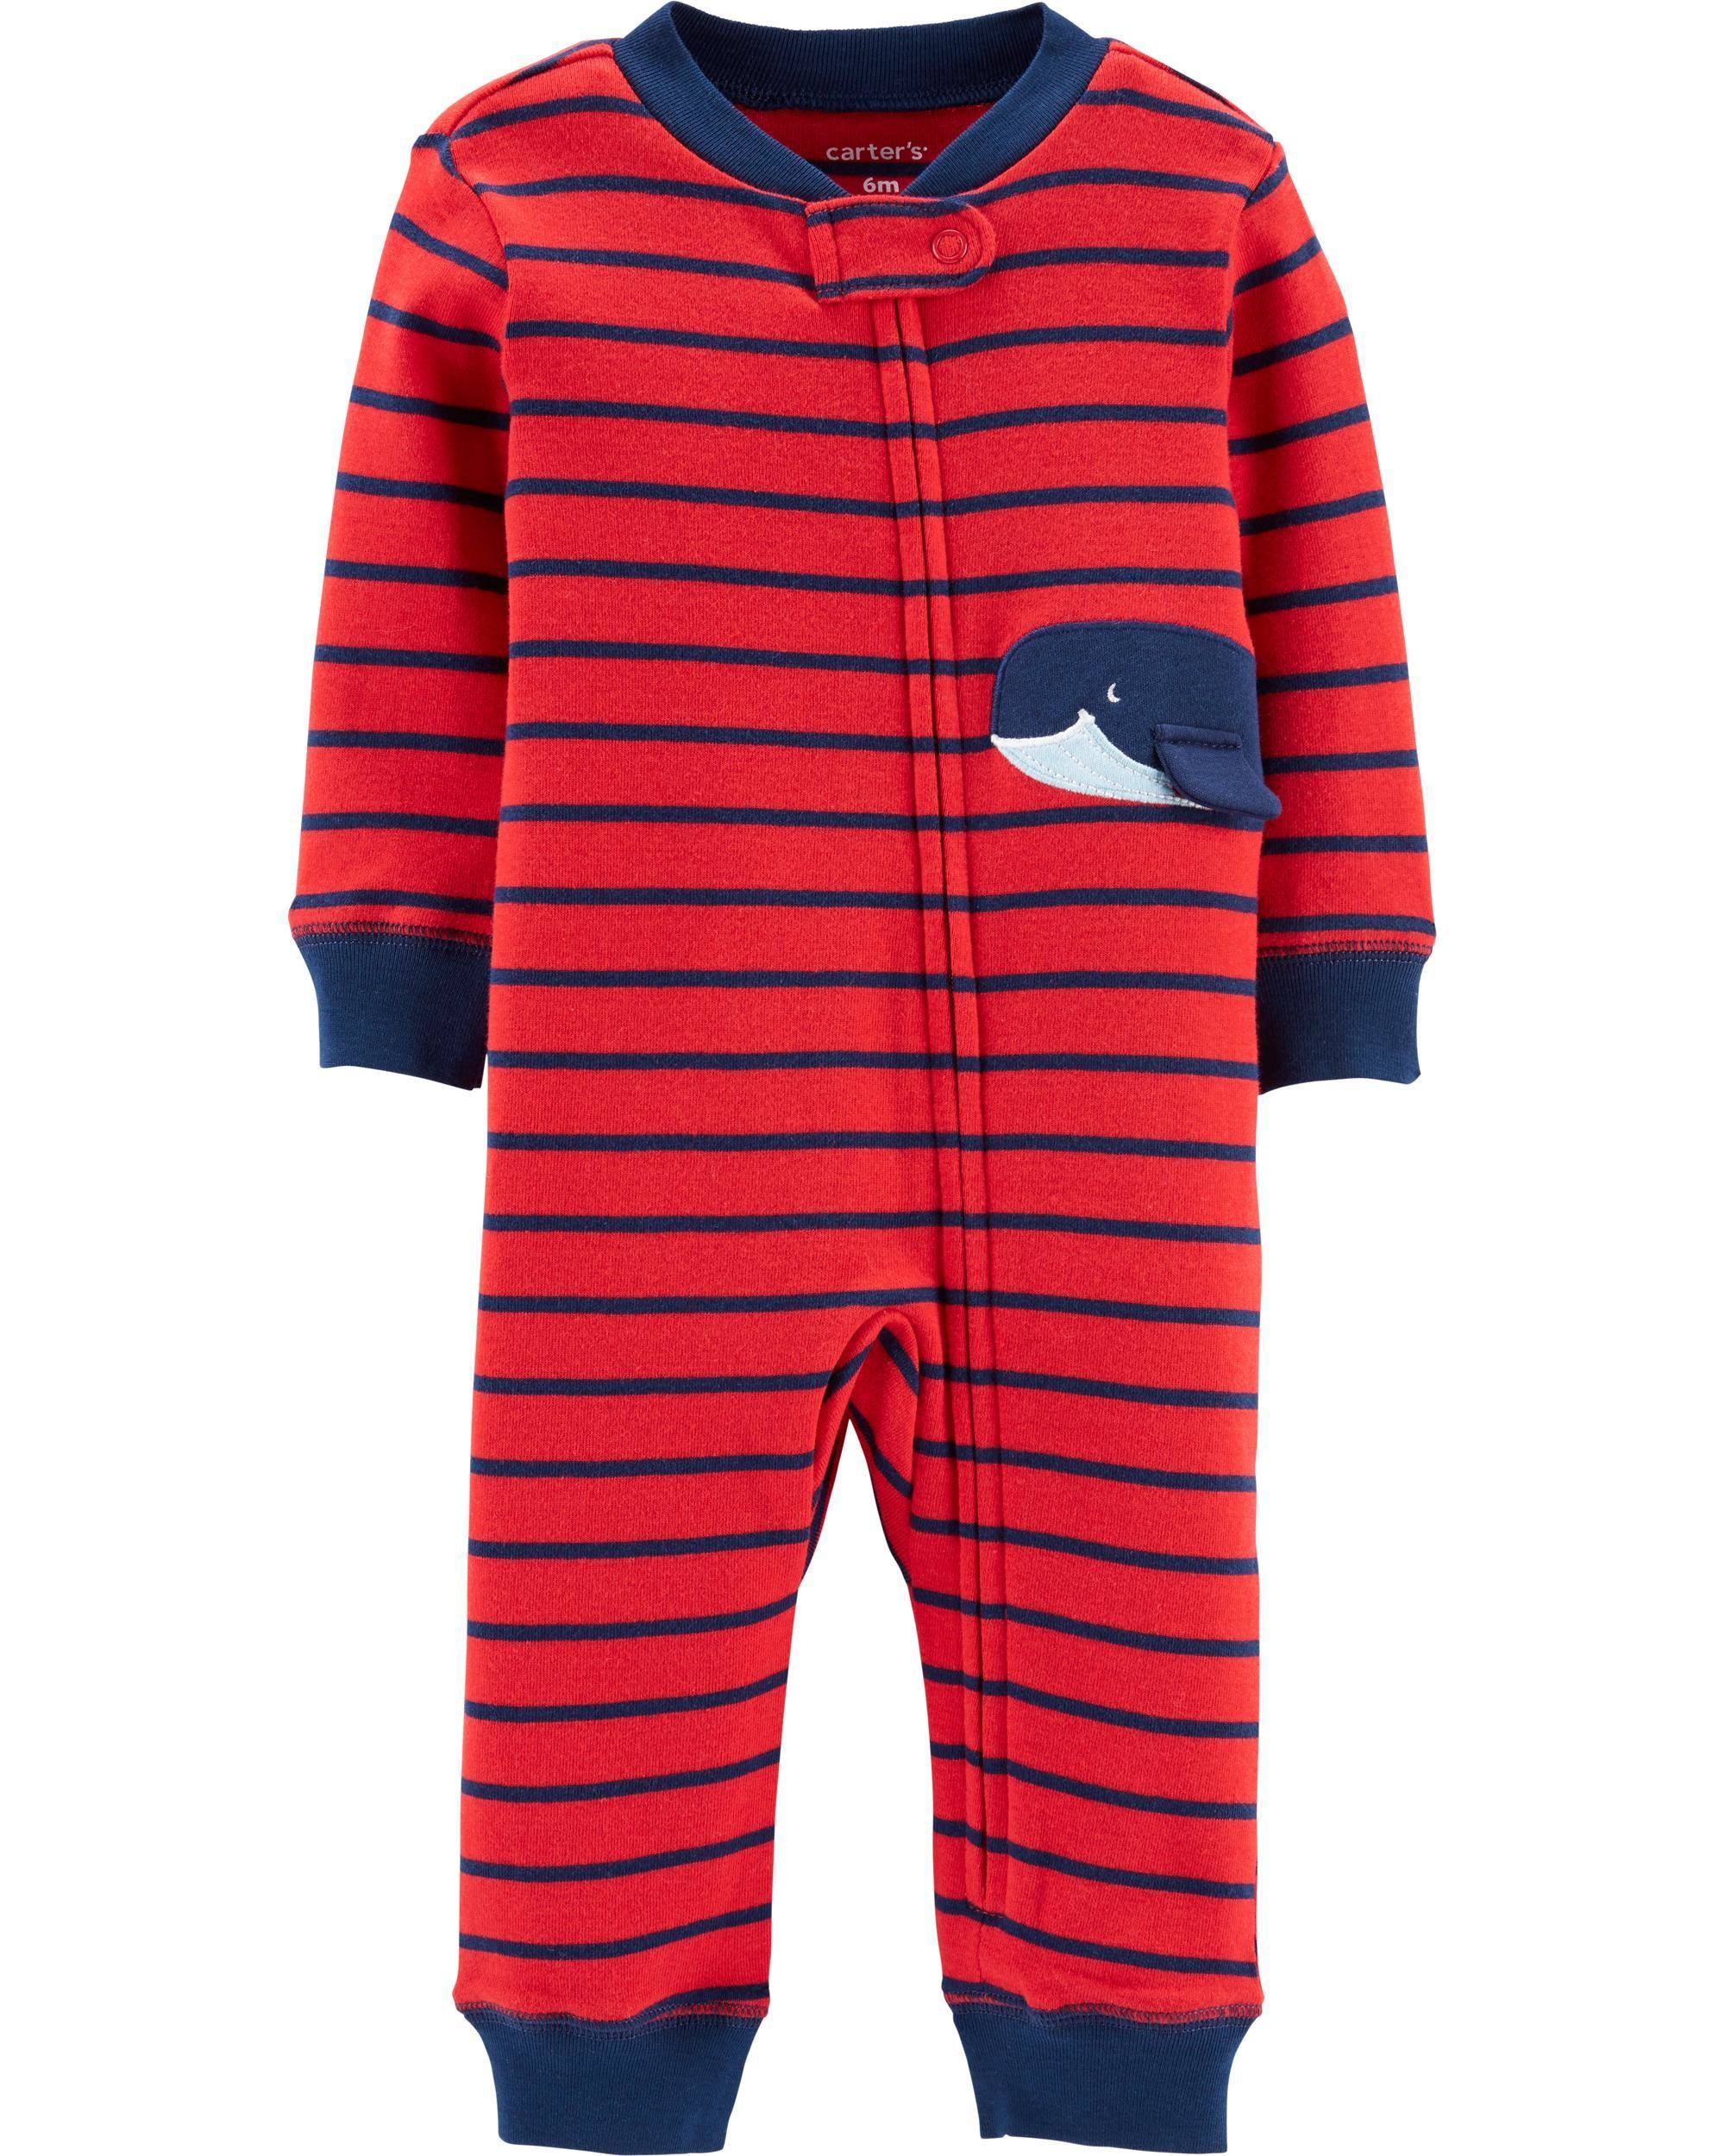 8bce74a13 Whale Zip-Up Footless Sleep & Play | Carters clothes for the wee ...